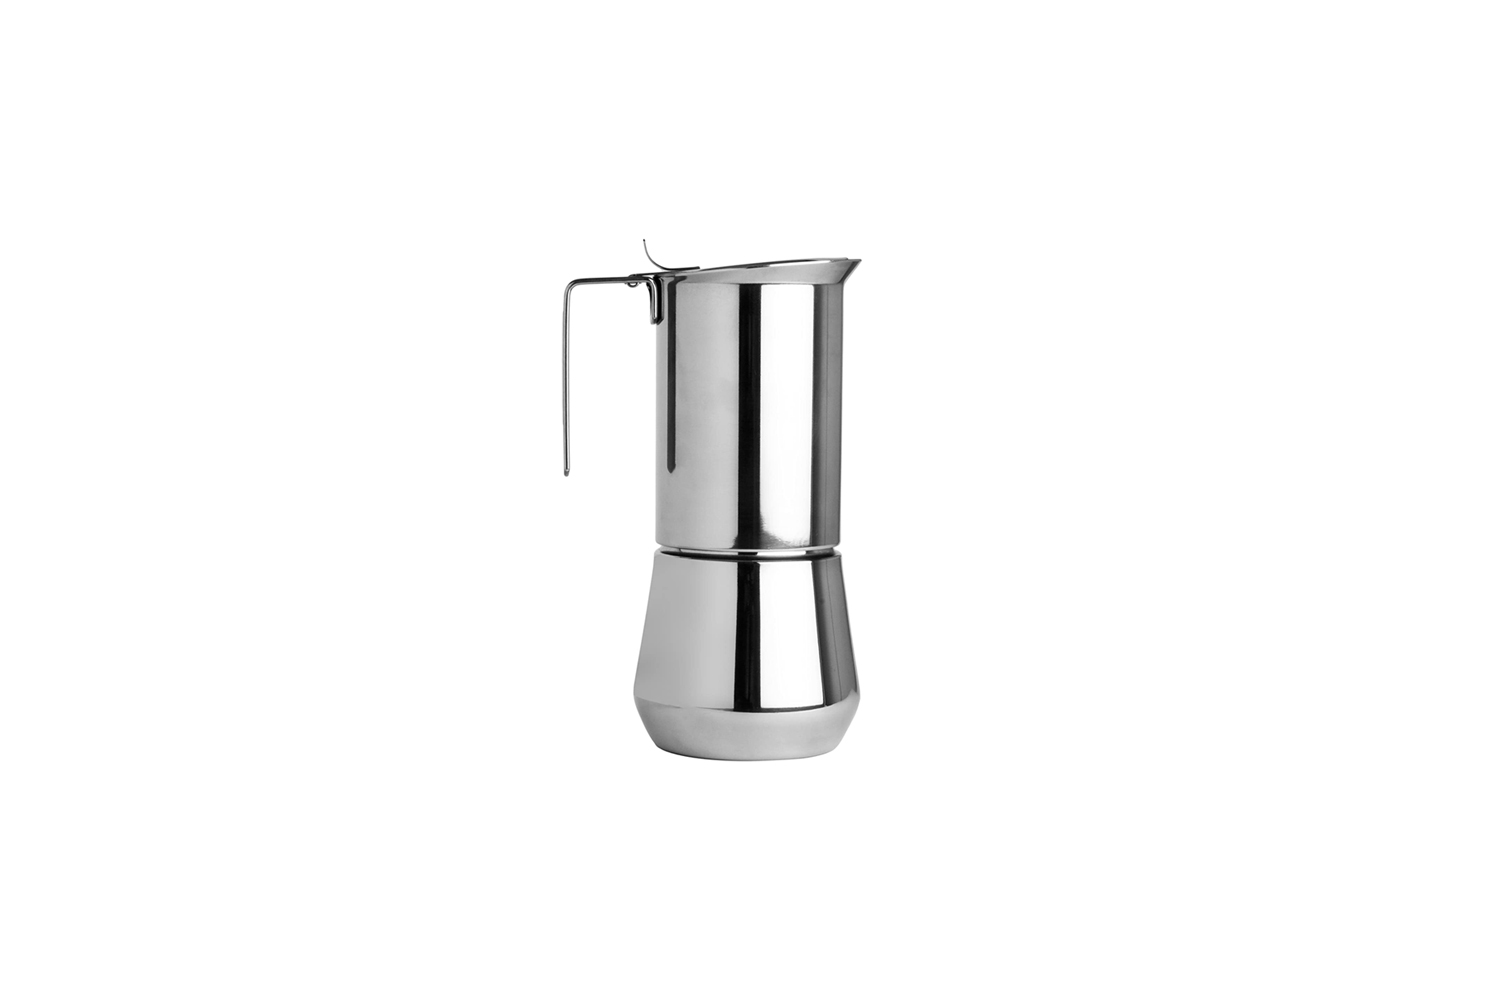 the ilsa stainless steel stovetop espresso maker is \$70.08 on amazon. 11